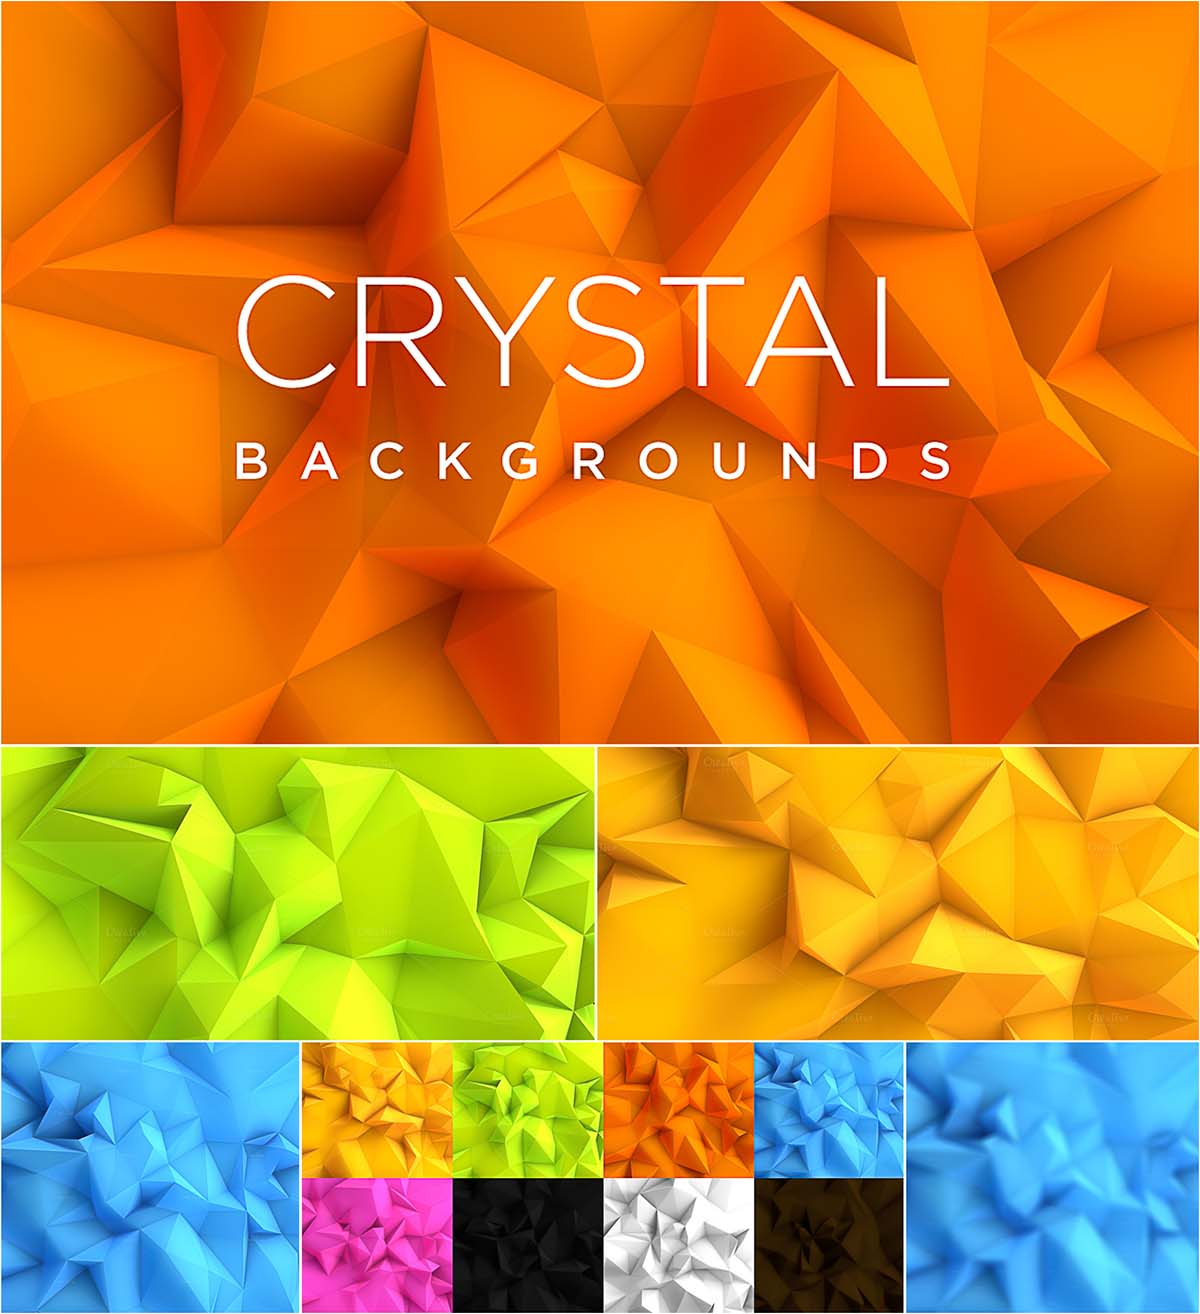 Crystal backgrounds collection